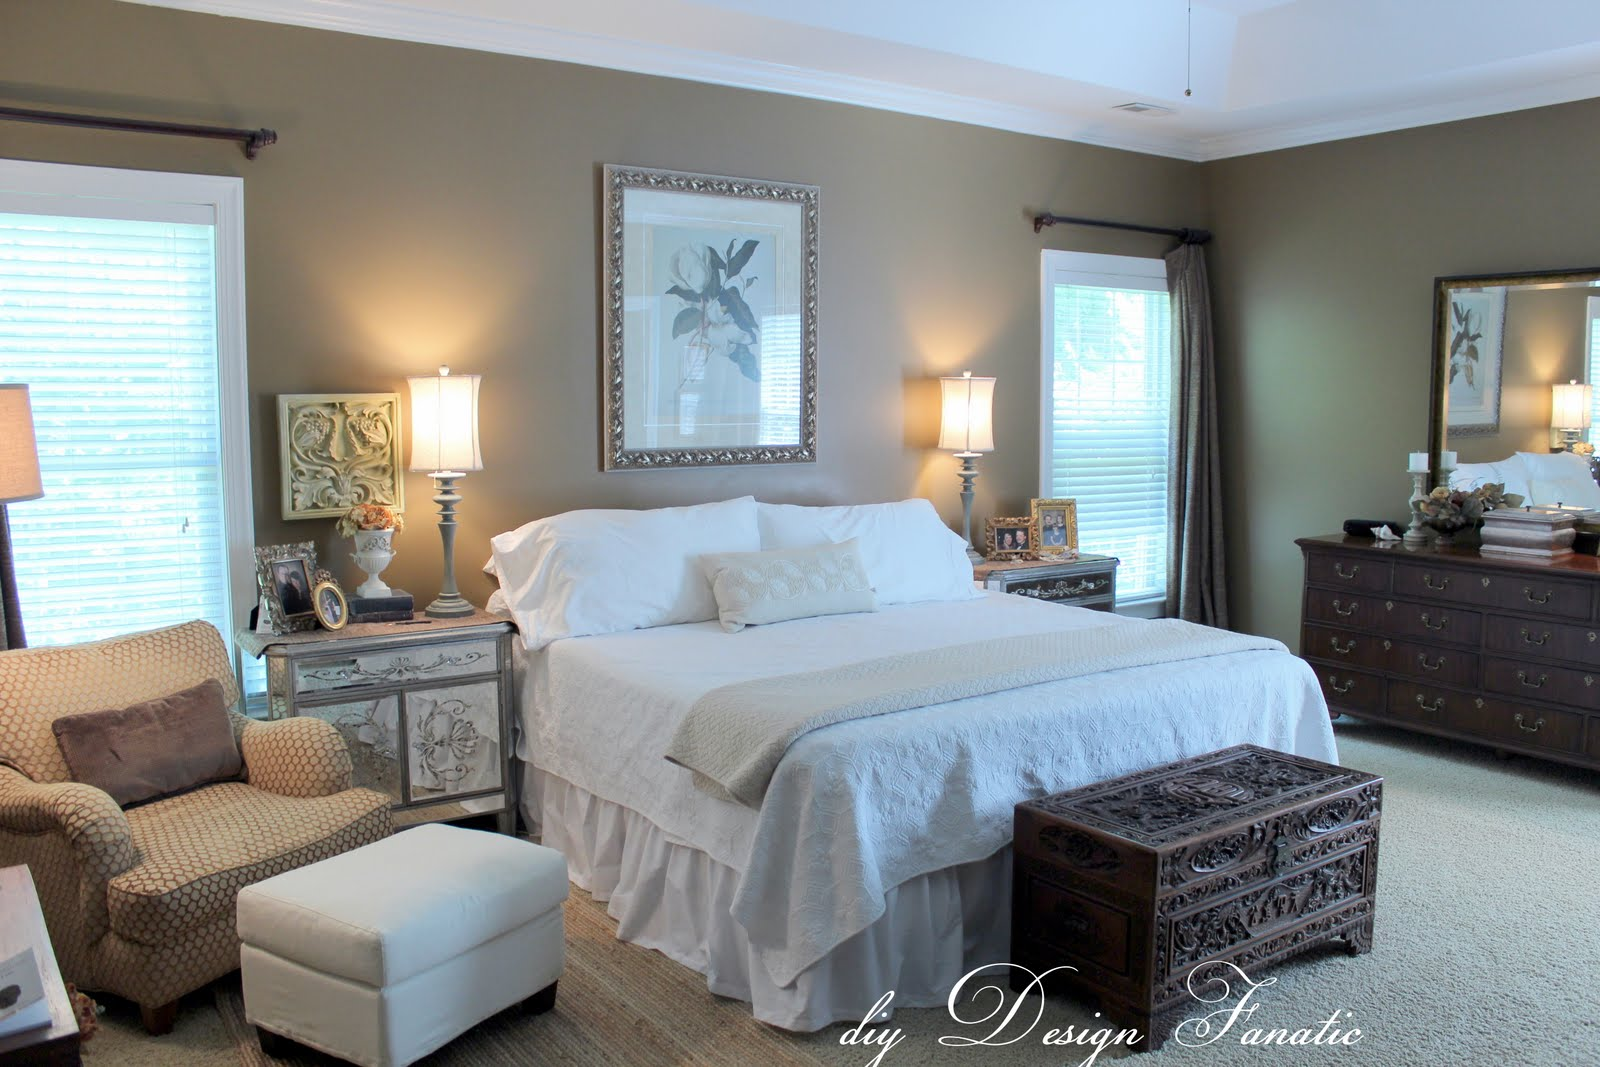 diy design fanatic decorating a master bedroom on a budget